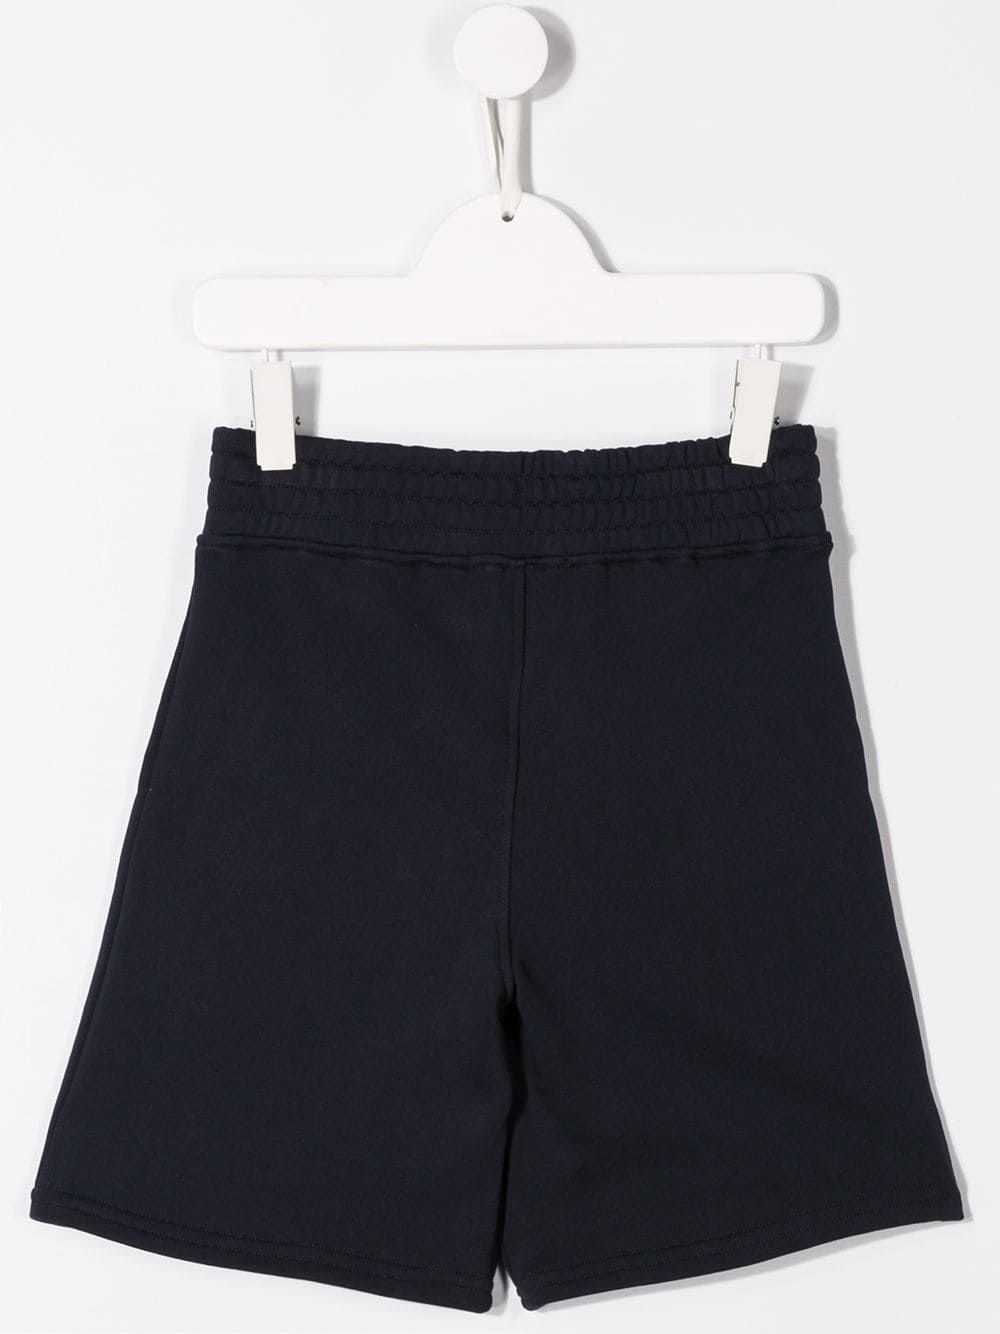 NEIL BARRETT KIDS logo print track shorts | Neil Barrett Kids